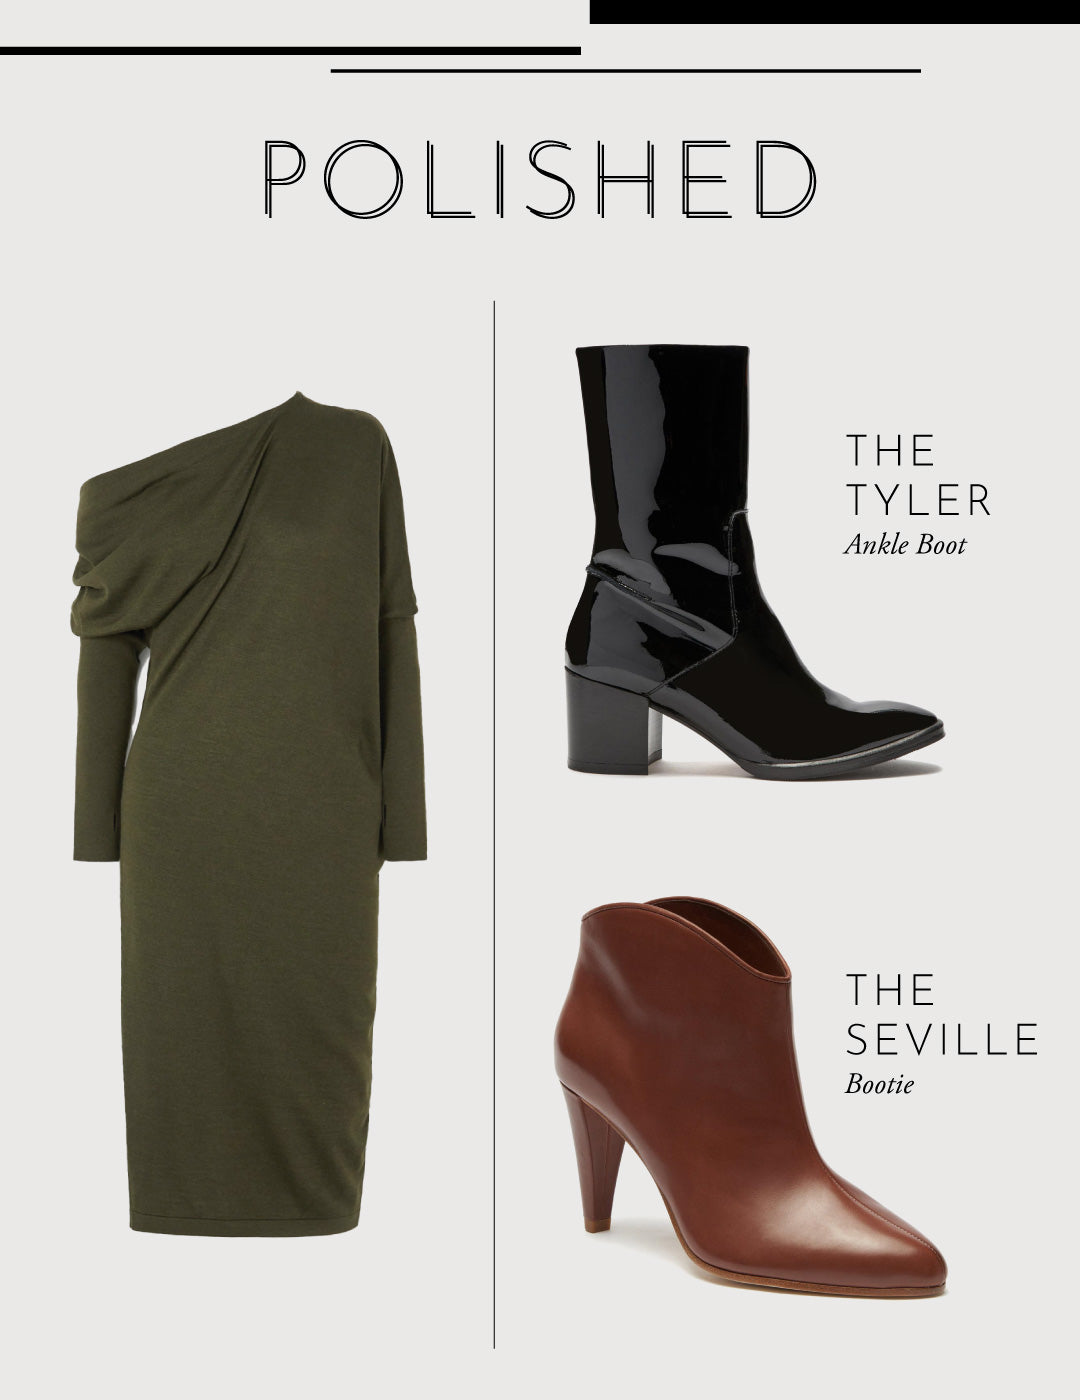 fall boots style guide- etienne aigner - polished